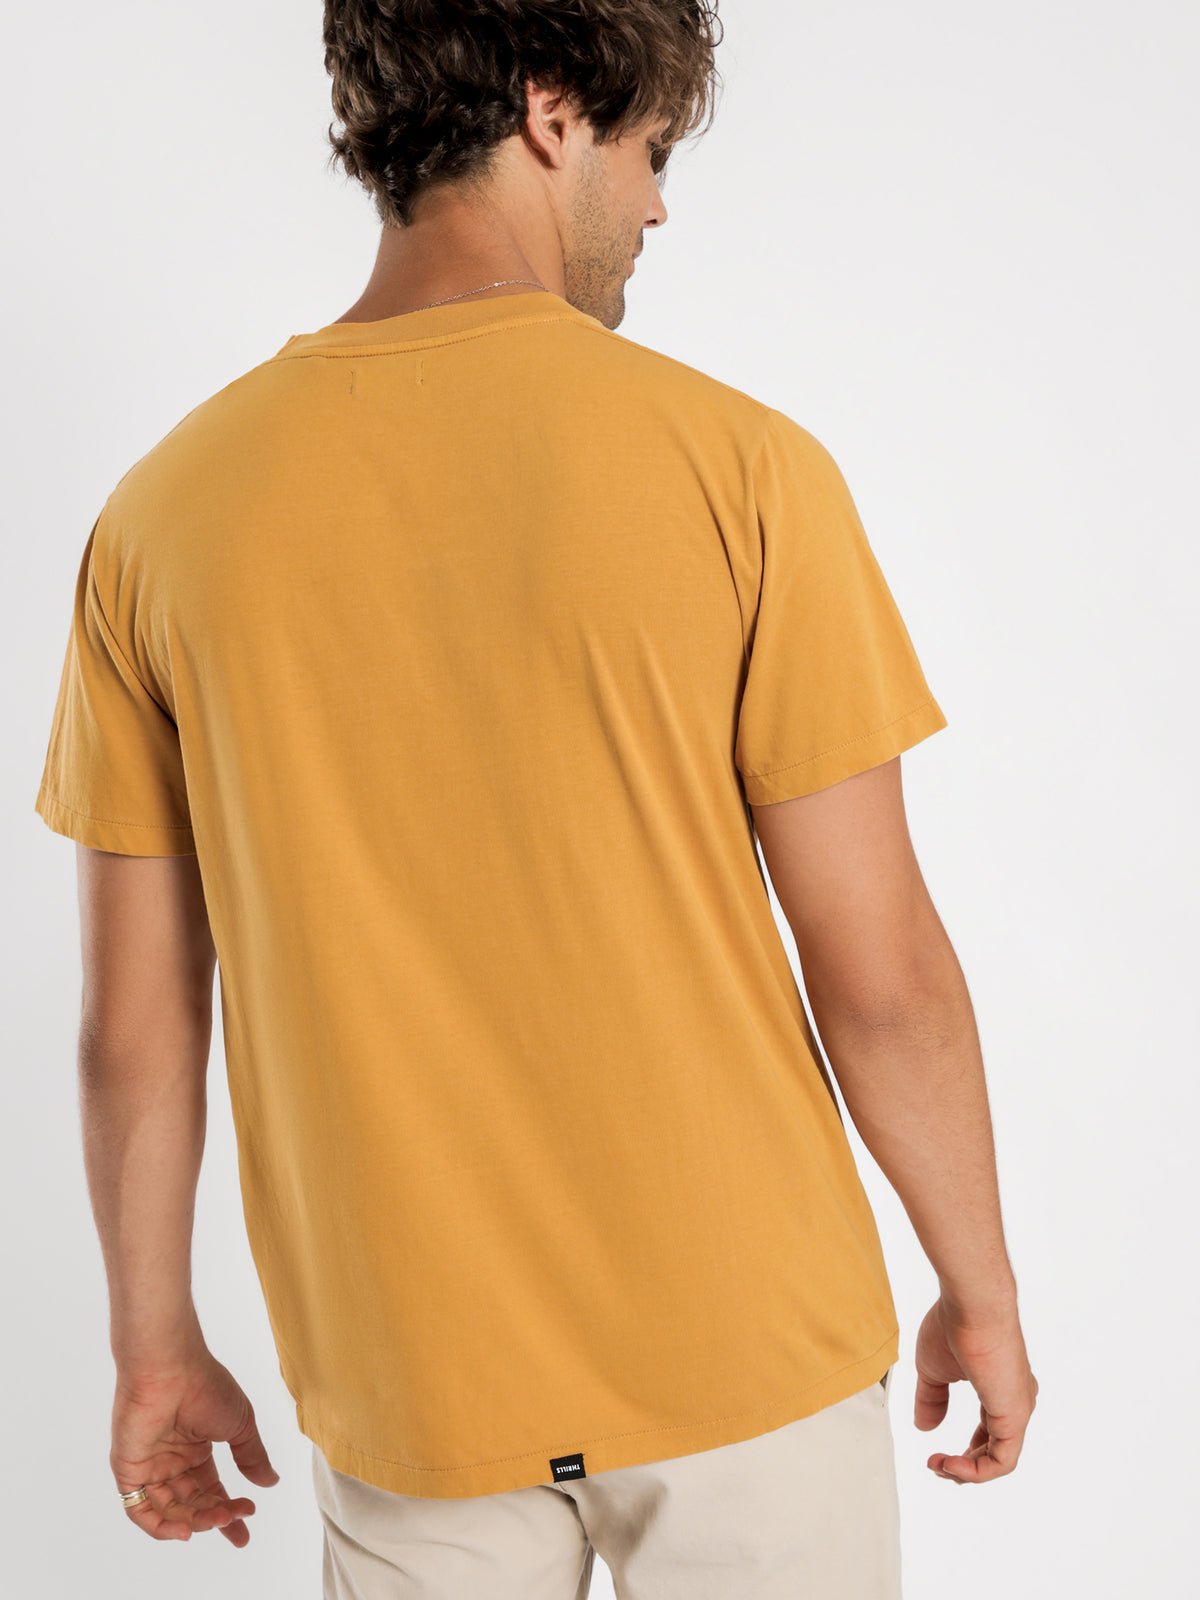 Strength Merch Fit T-Shirt in Yellow